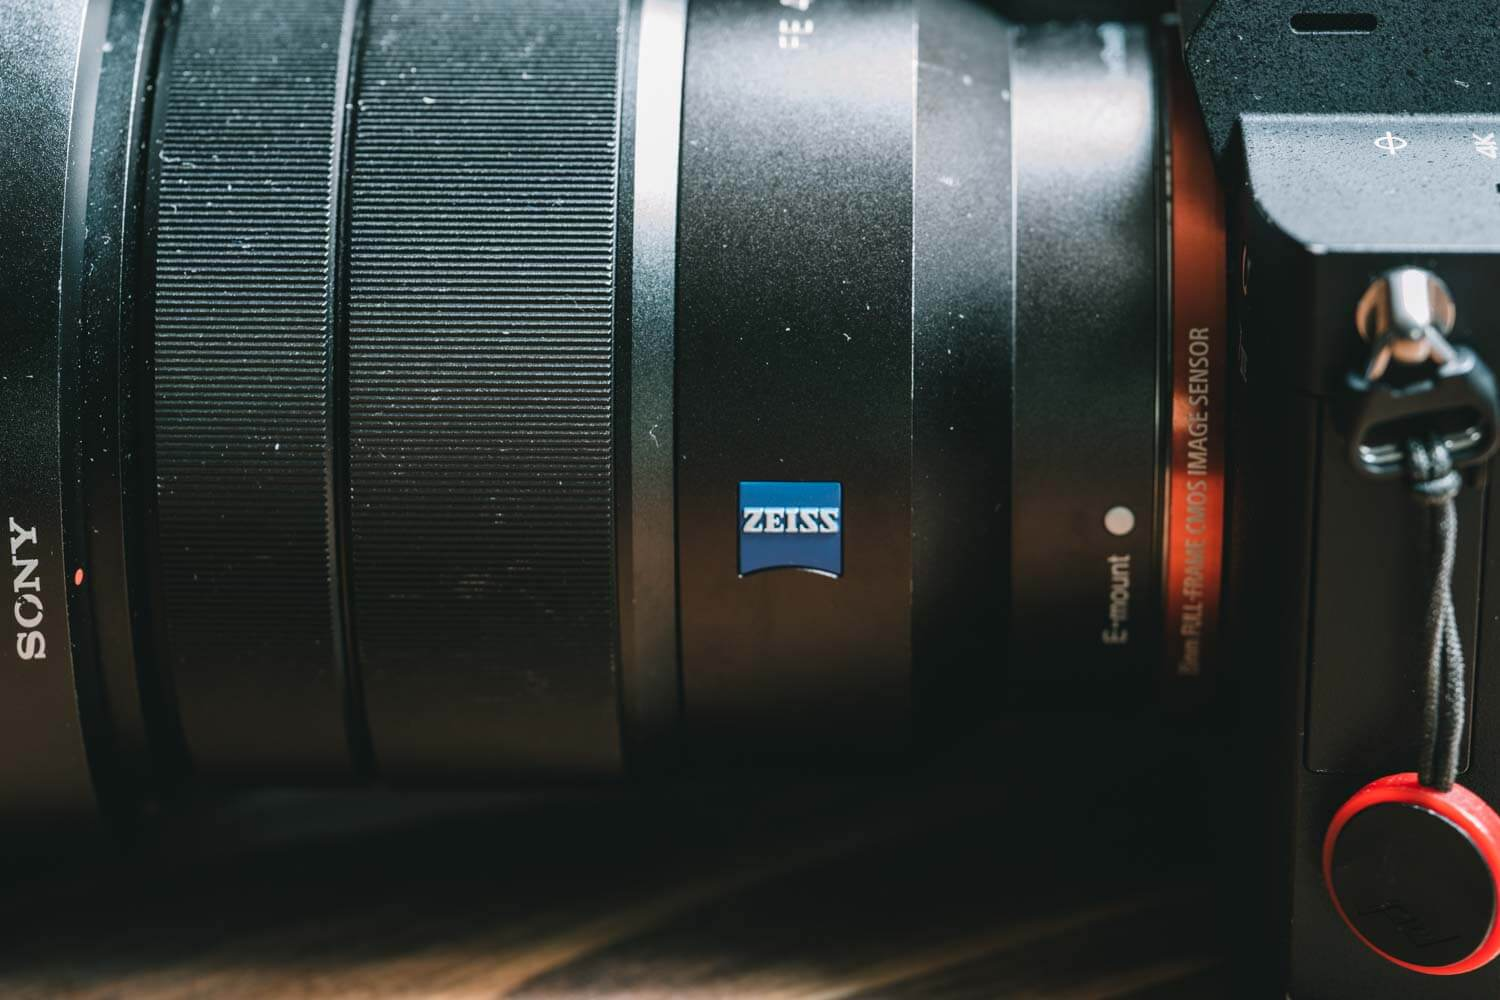 Zeissのロゴ